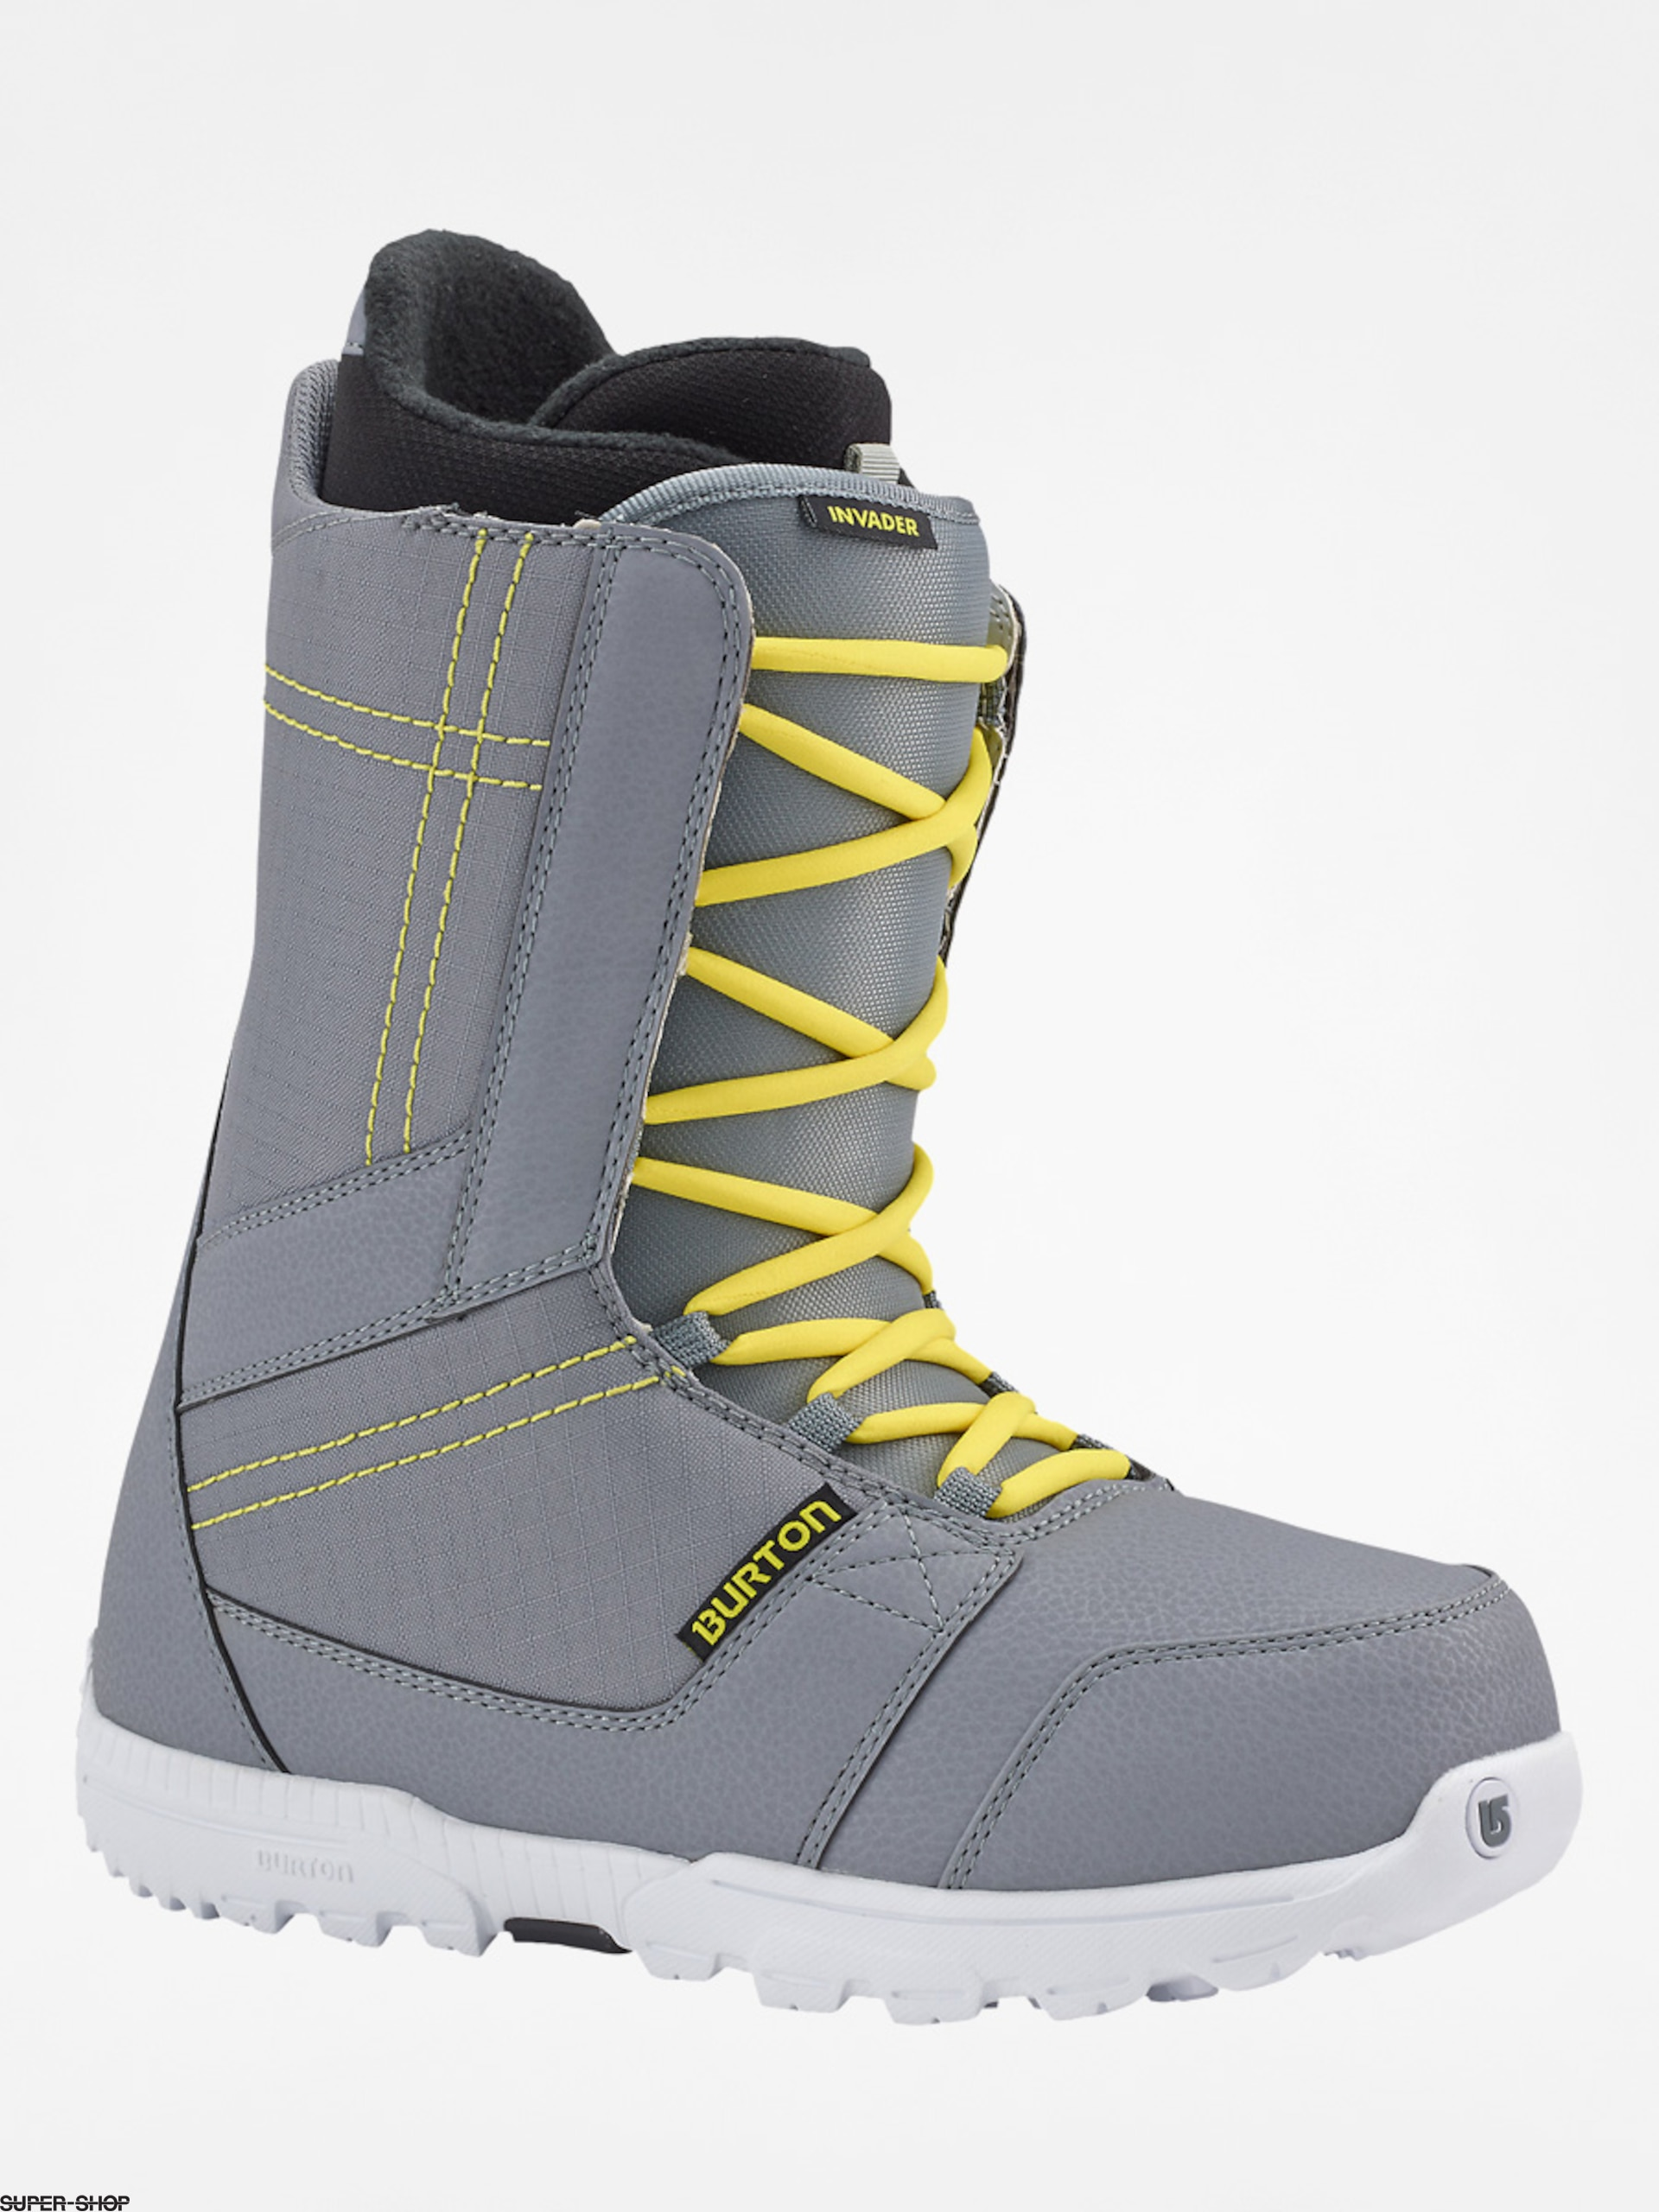 Burton Snowboard boots Invader (gray/yellow)